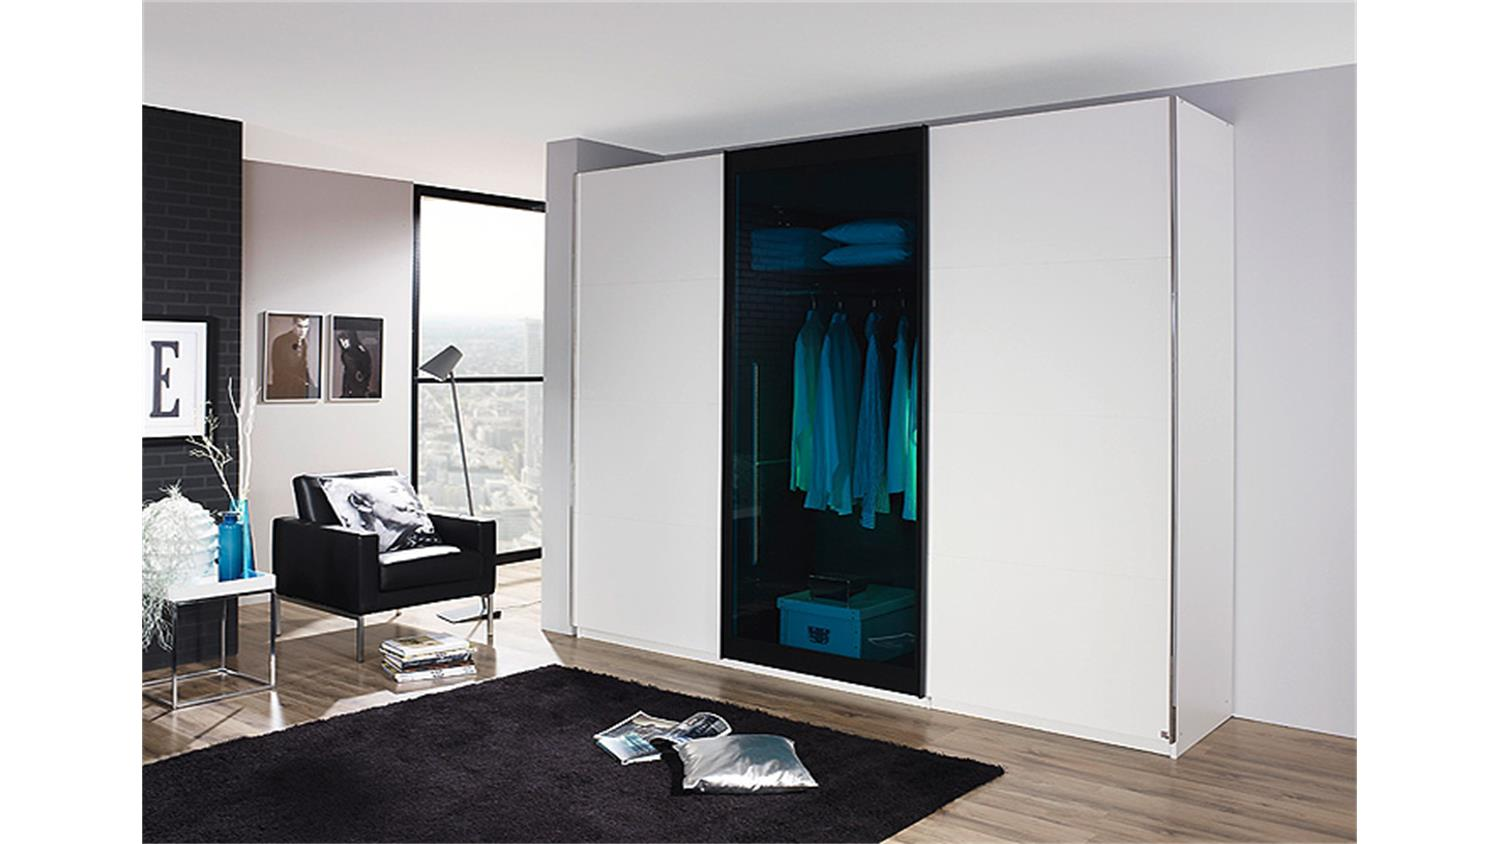 schwebet renschrank lahti wei petrol glas 270 cm. Black Bedroom Furniture Sets. Home Design Ideas